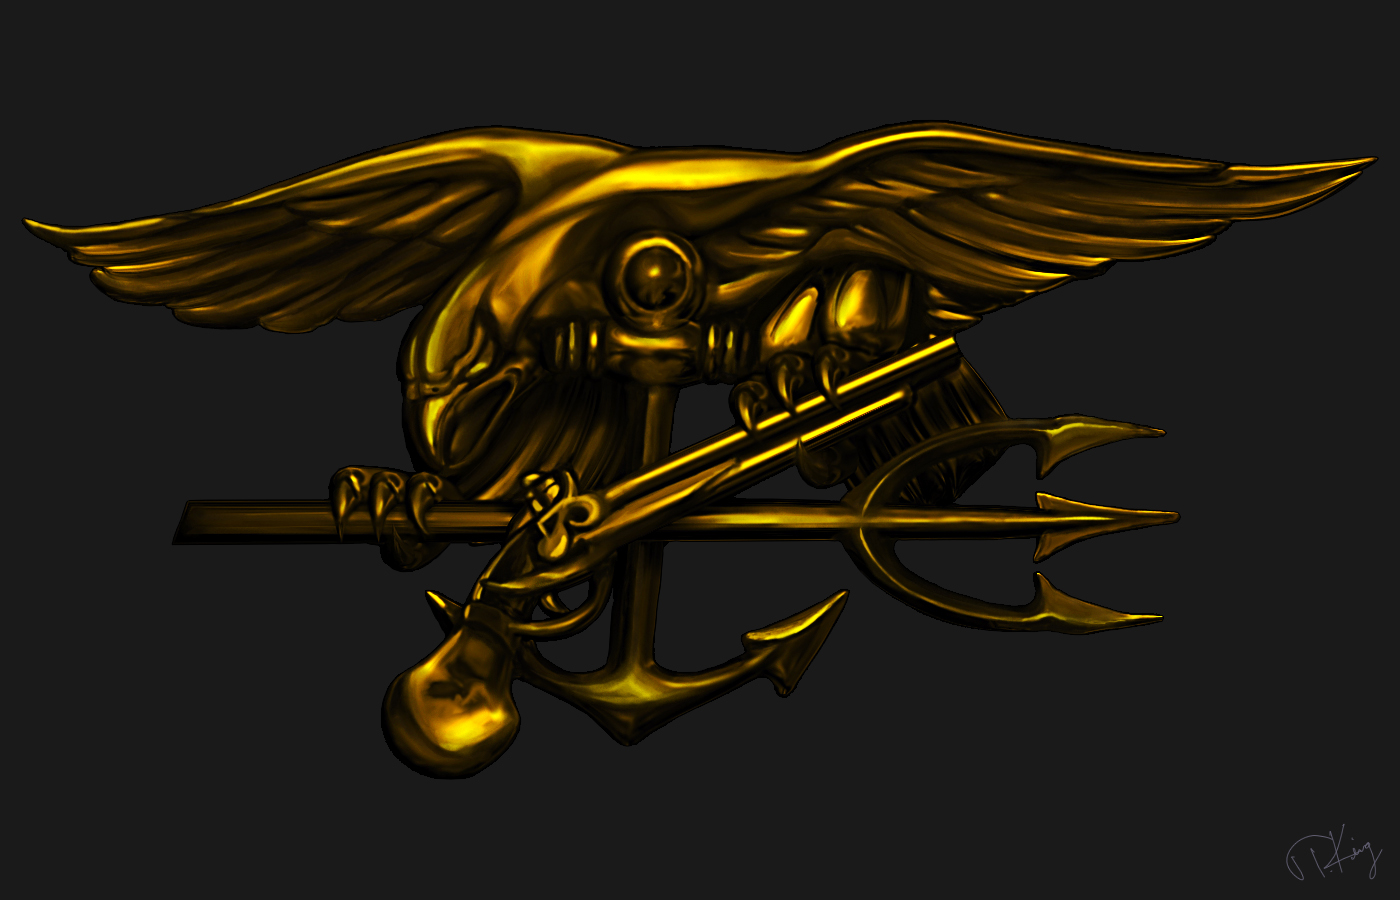 US Navy SEAL Trident by TKingArt 1400x900